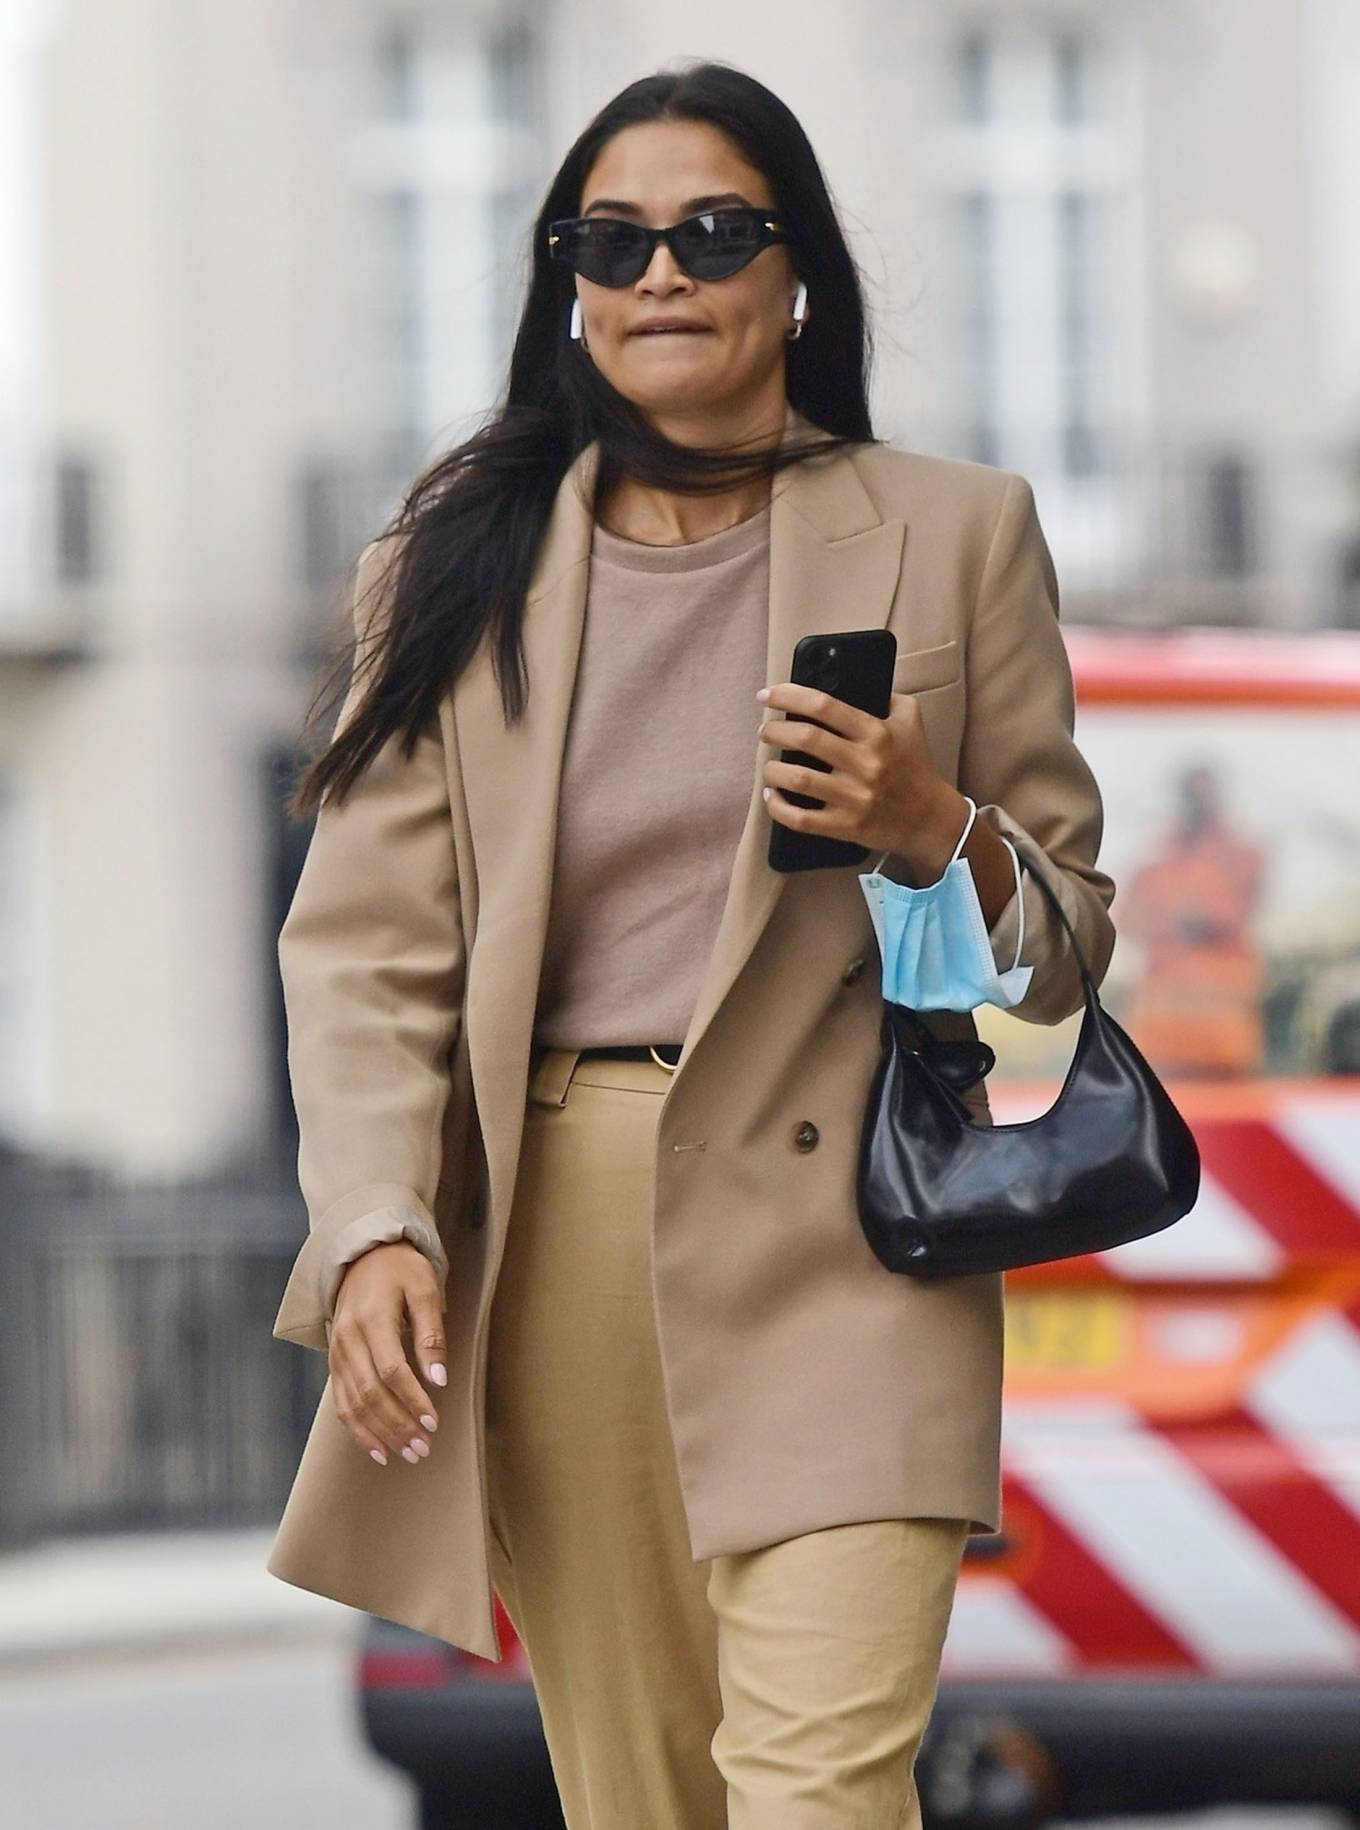 Shanina Shaik 2020 : Shanina Shaik – Stylish in her beige trousers and jacket while out in London-01